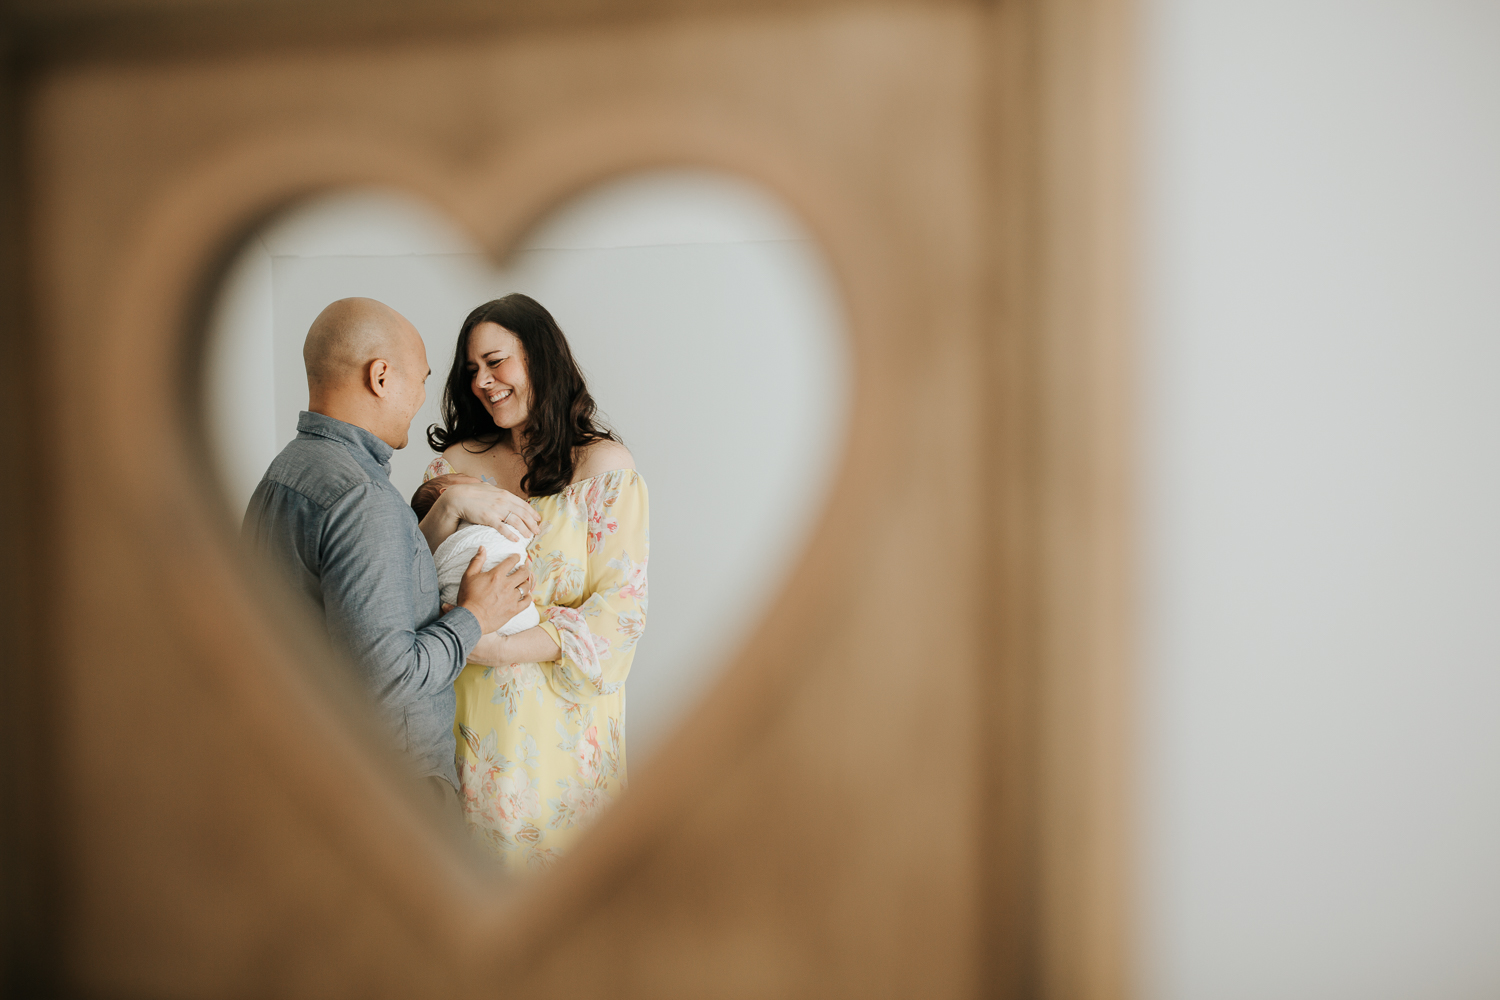 new parents framed in heart mirror, mother holding sleeping 3 week old baby boy to her chest, smiling at husband, dad's hand on son - GTA LifestylePhotos